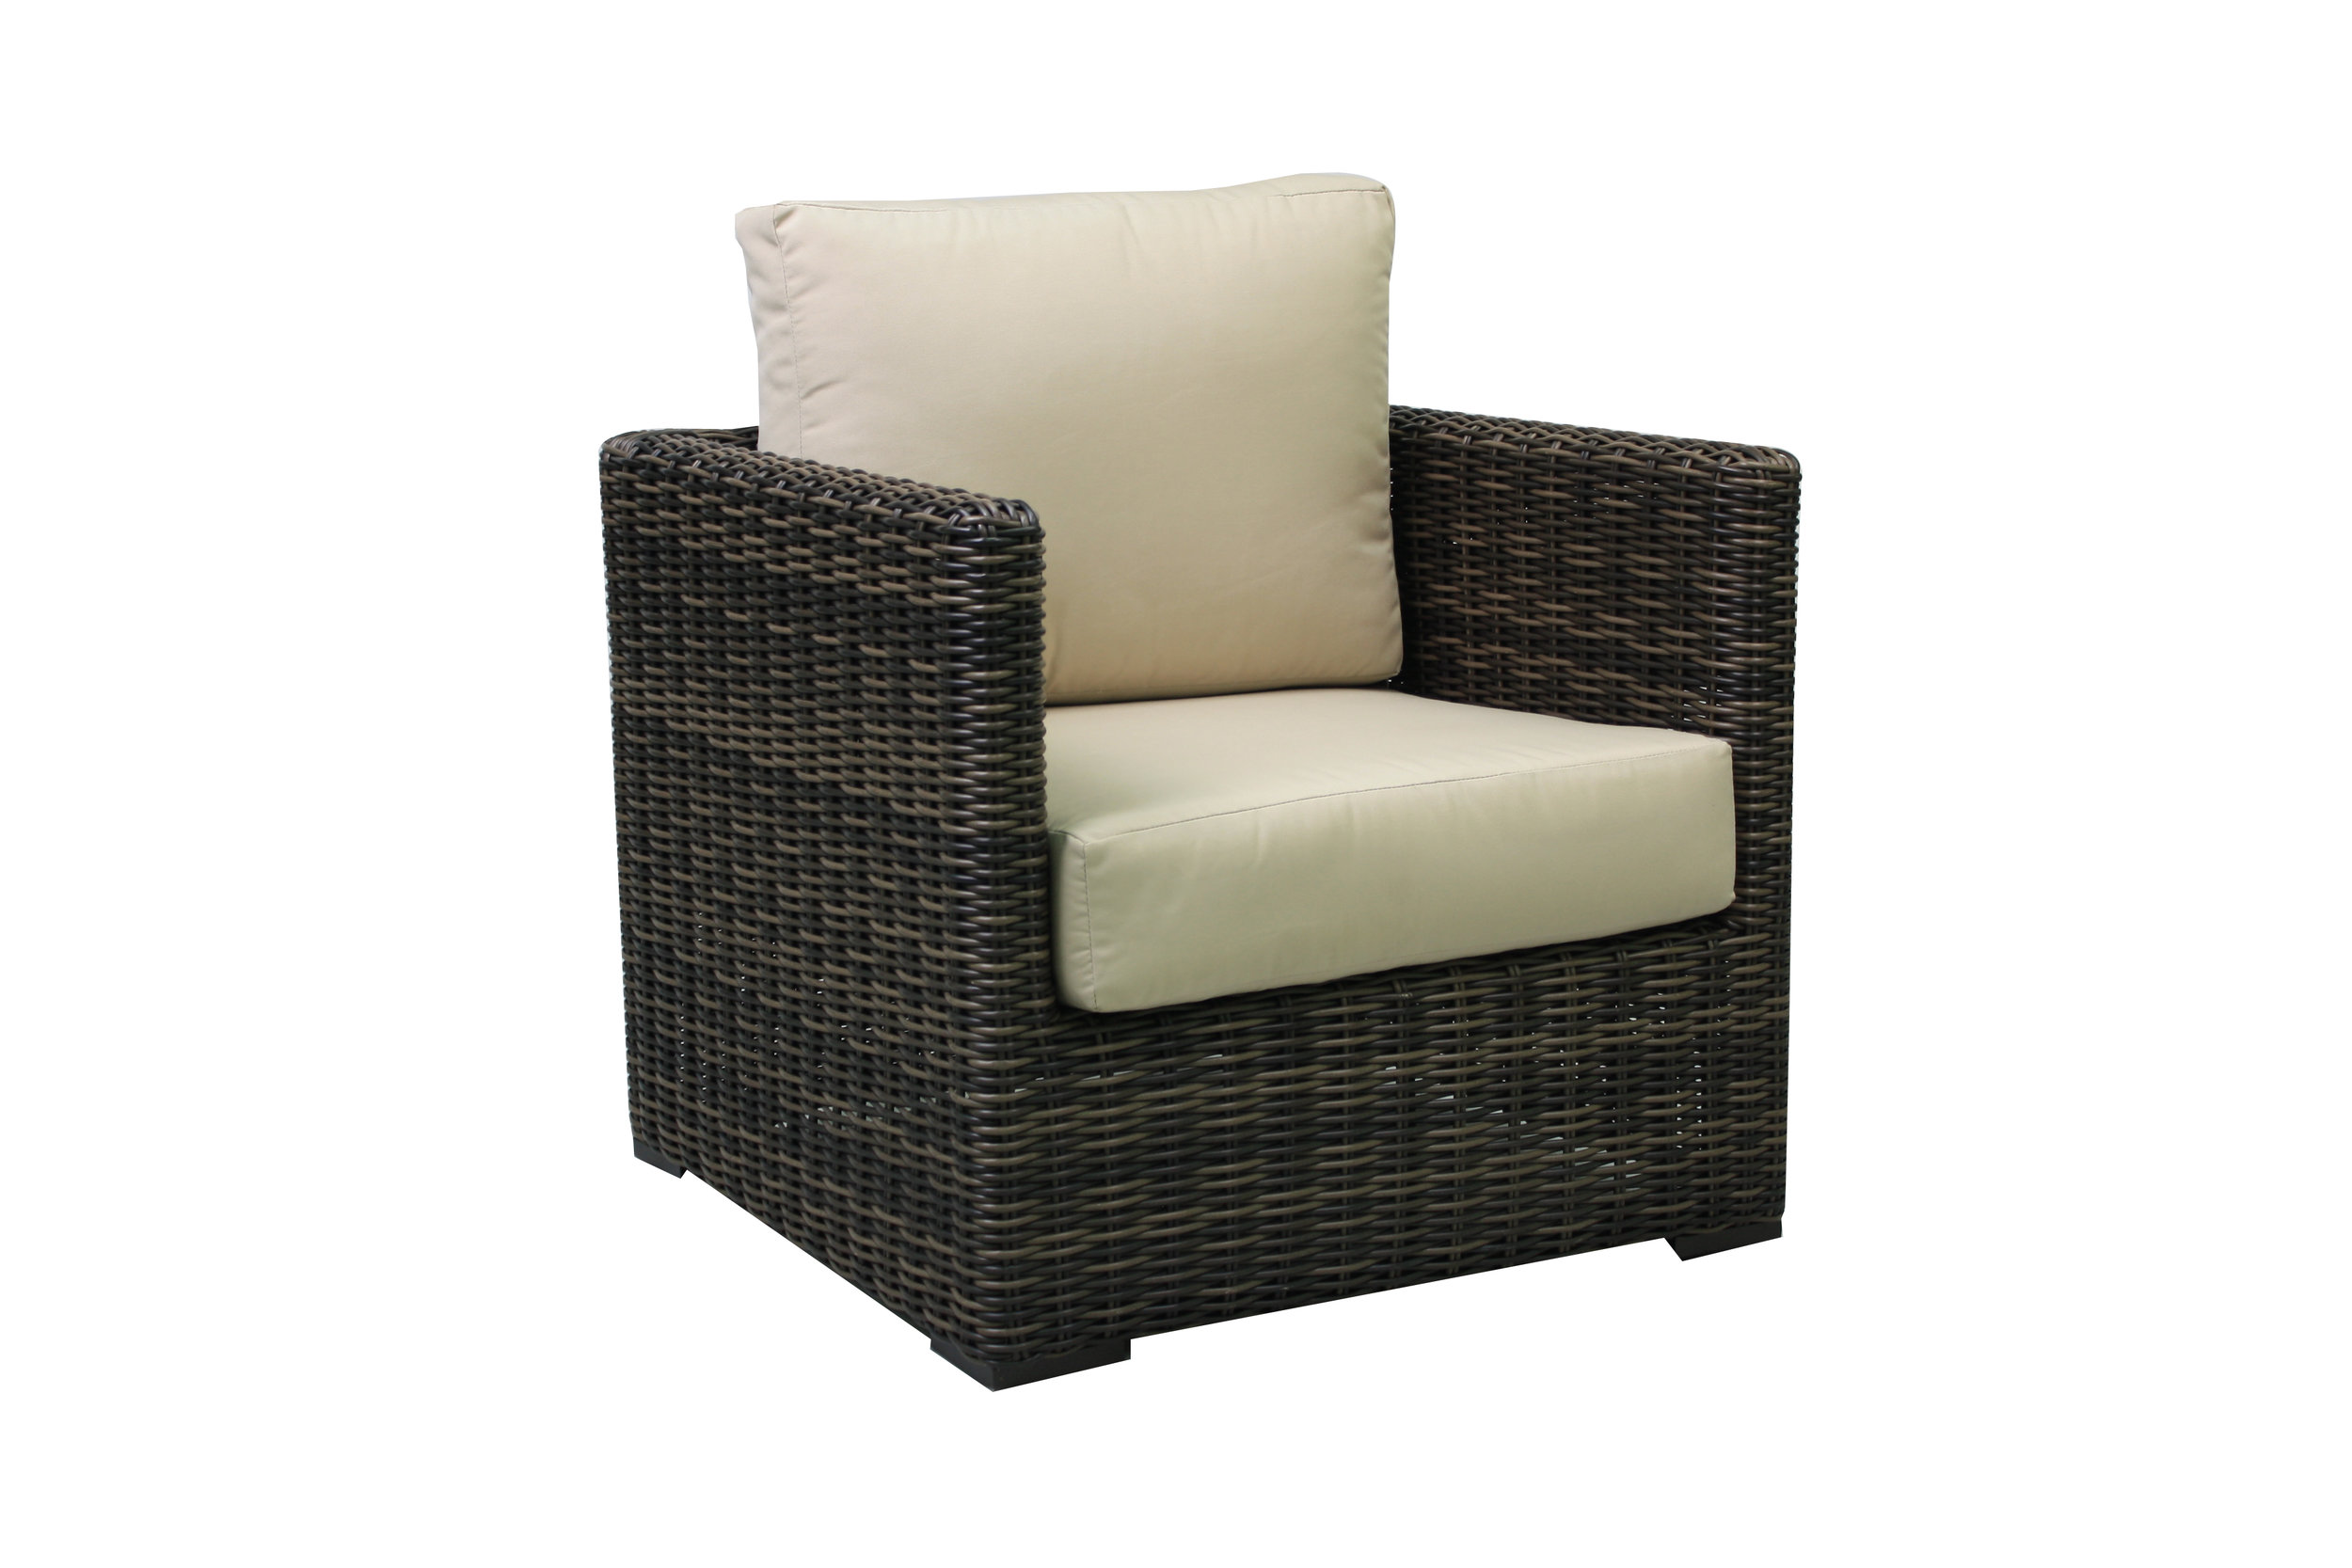 996031 Greenville Lounge Chair   32 x 32 x 28